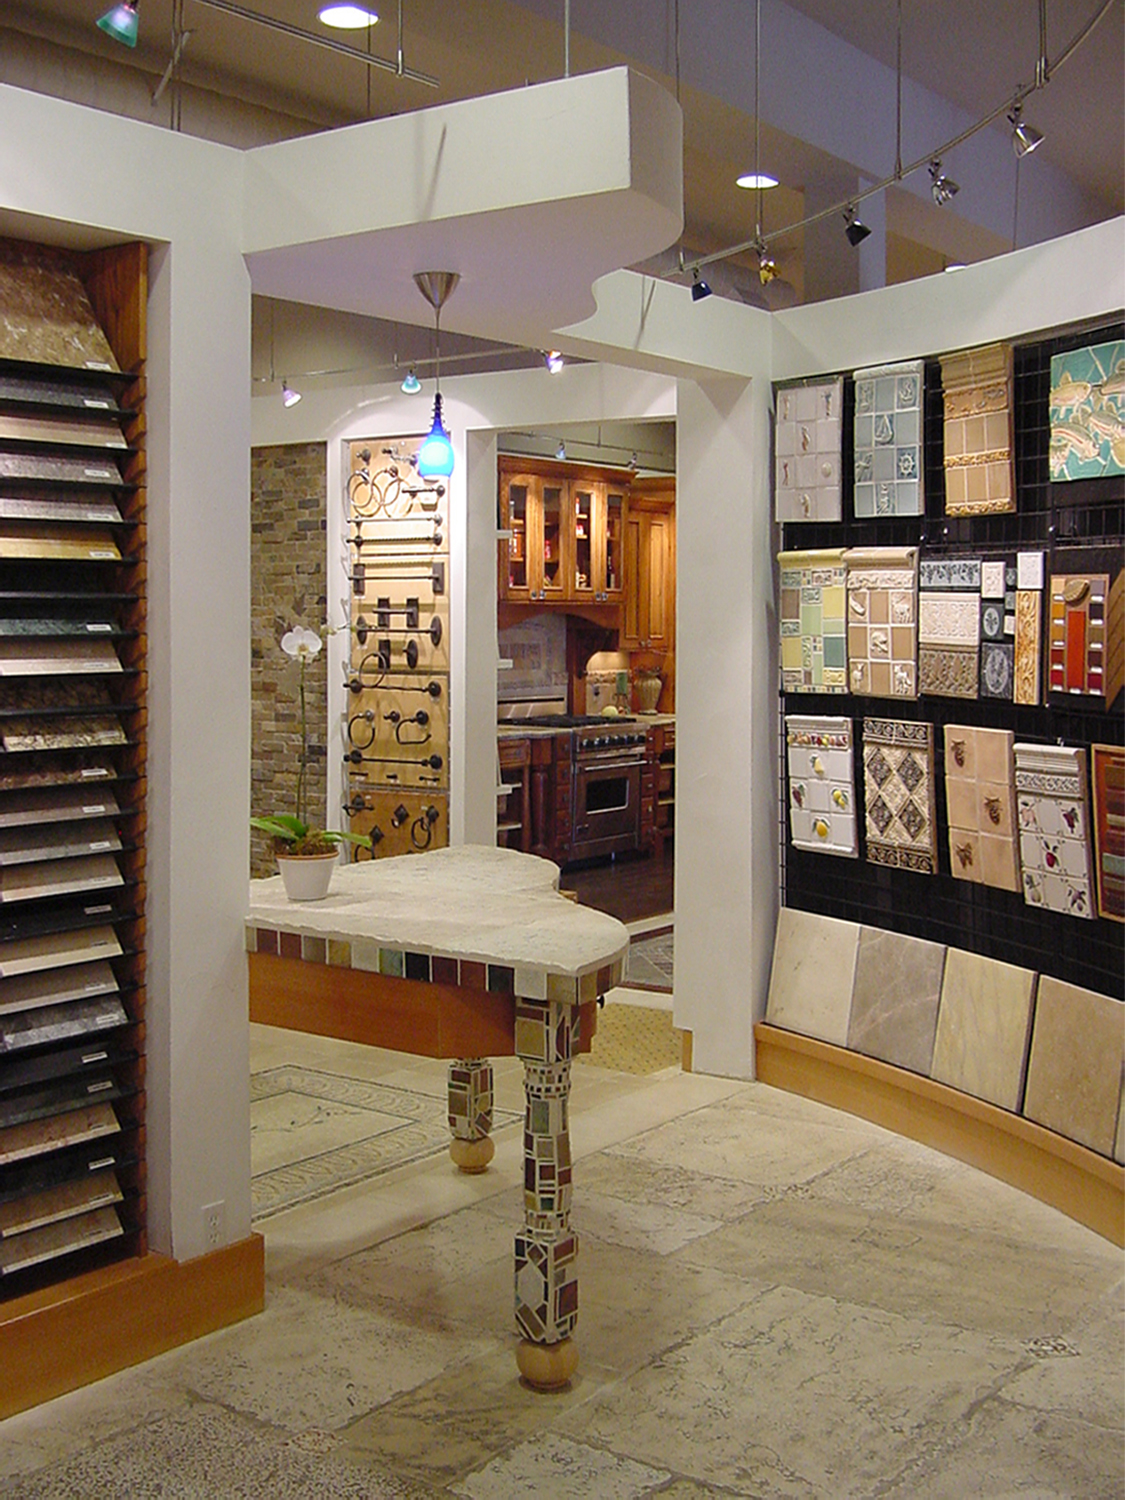 Home Concepts Tiles display